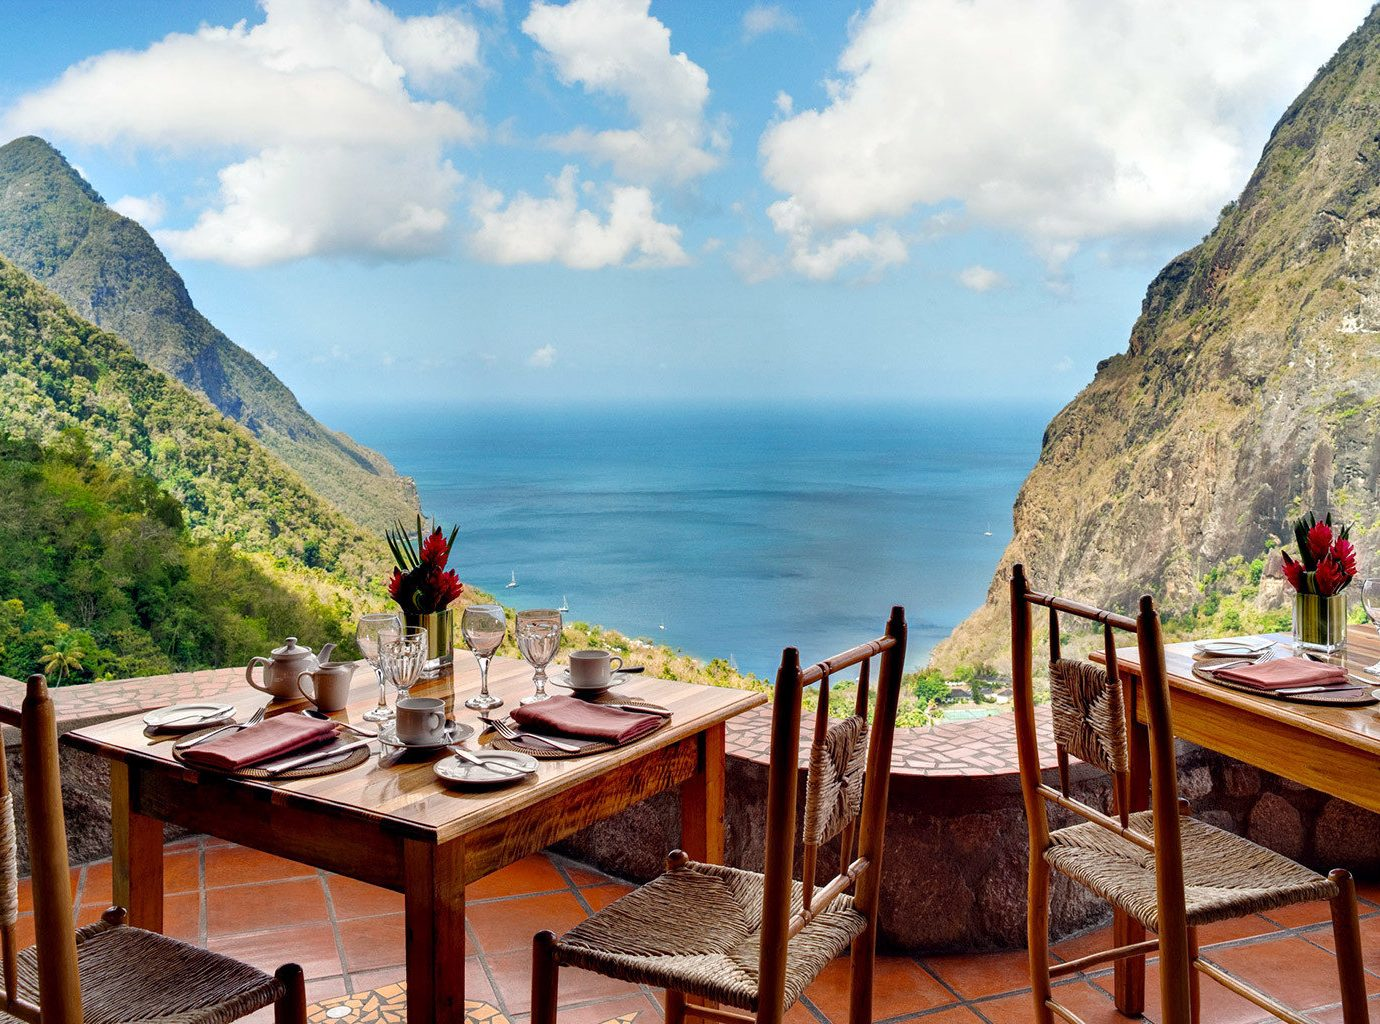 Adult-only Dining Drink Eat Food + Drink Honeymoon Hotels Luxury Luxury Travel Resort Romance Scenic views Trip Ideas mountain sky outdoor table chair leisure Nature vacation tourism Sea estate Coast travel bay overlooking set Island